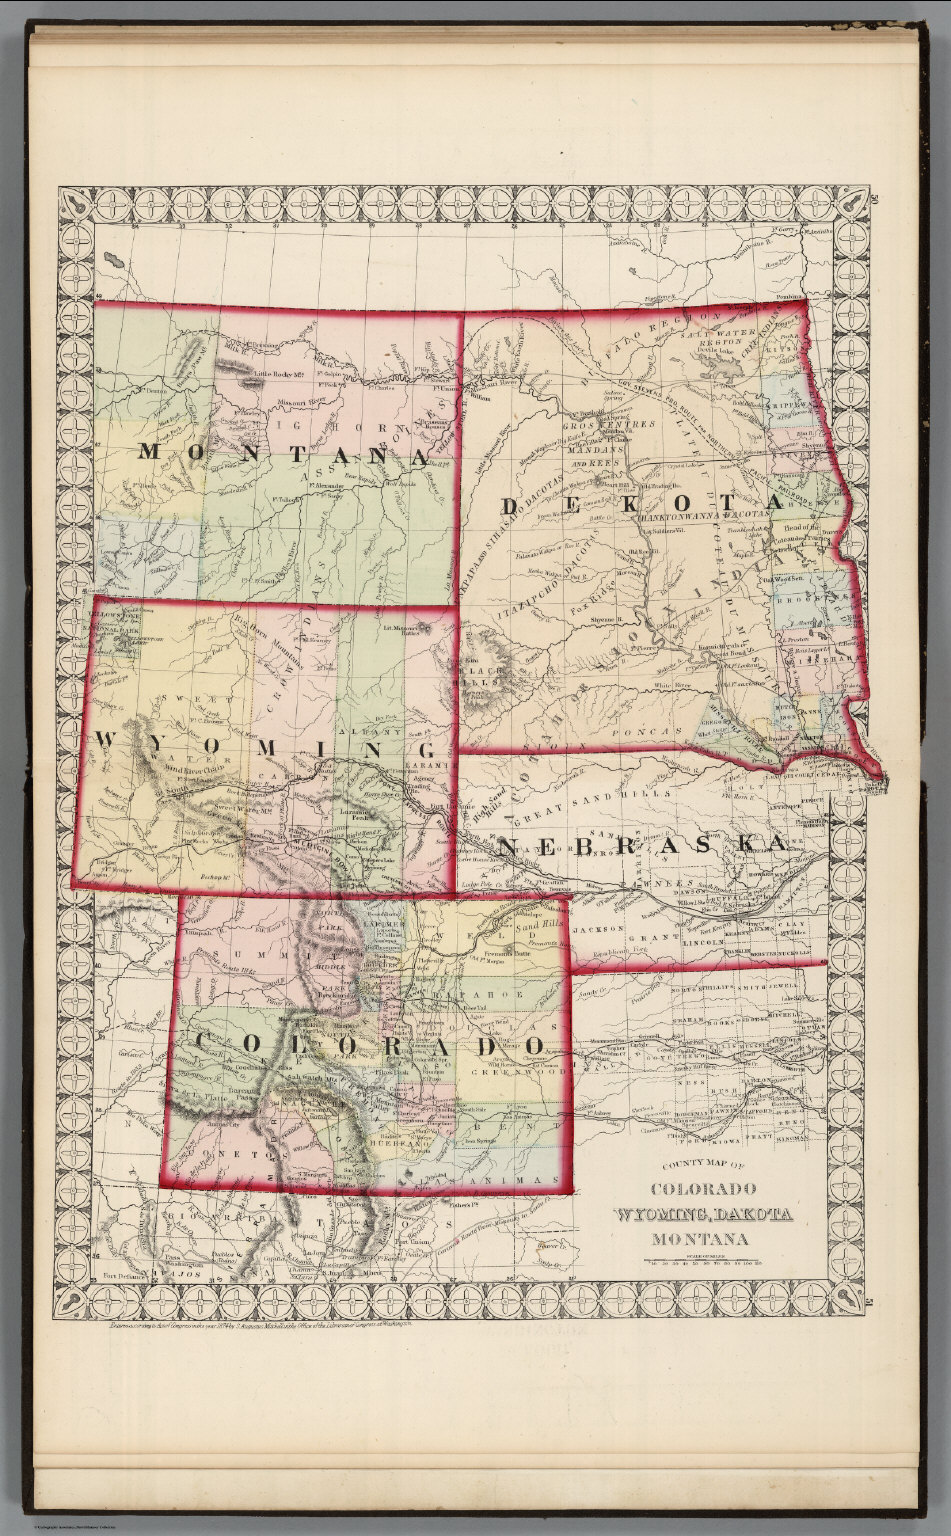 County Map of Colorado, Wyoming, Dakota, Montana. - David ...